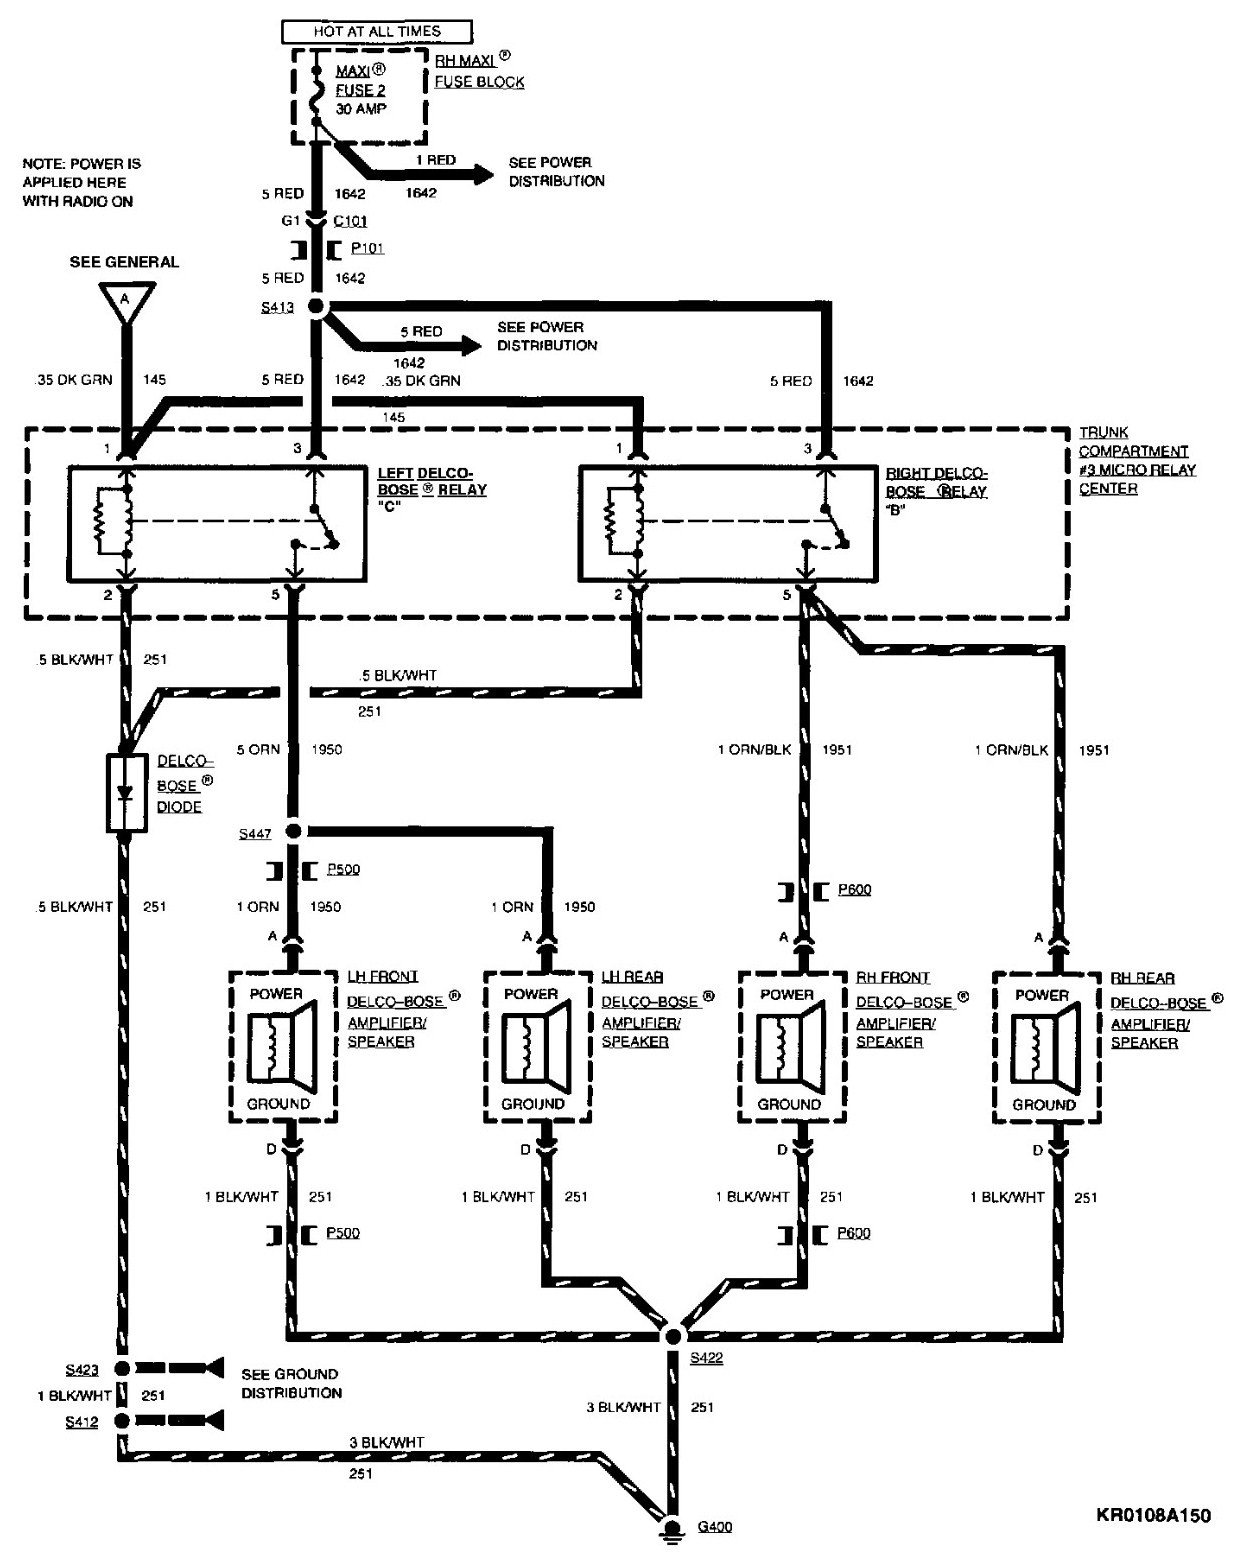 2009 10 24_182657_delco_0001 1994 cadillac stereo wiring wiring diagrams 1995 cadillac deville radio wiring diagram at couponss.co